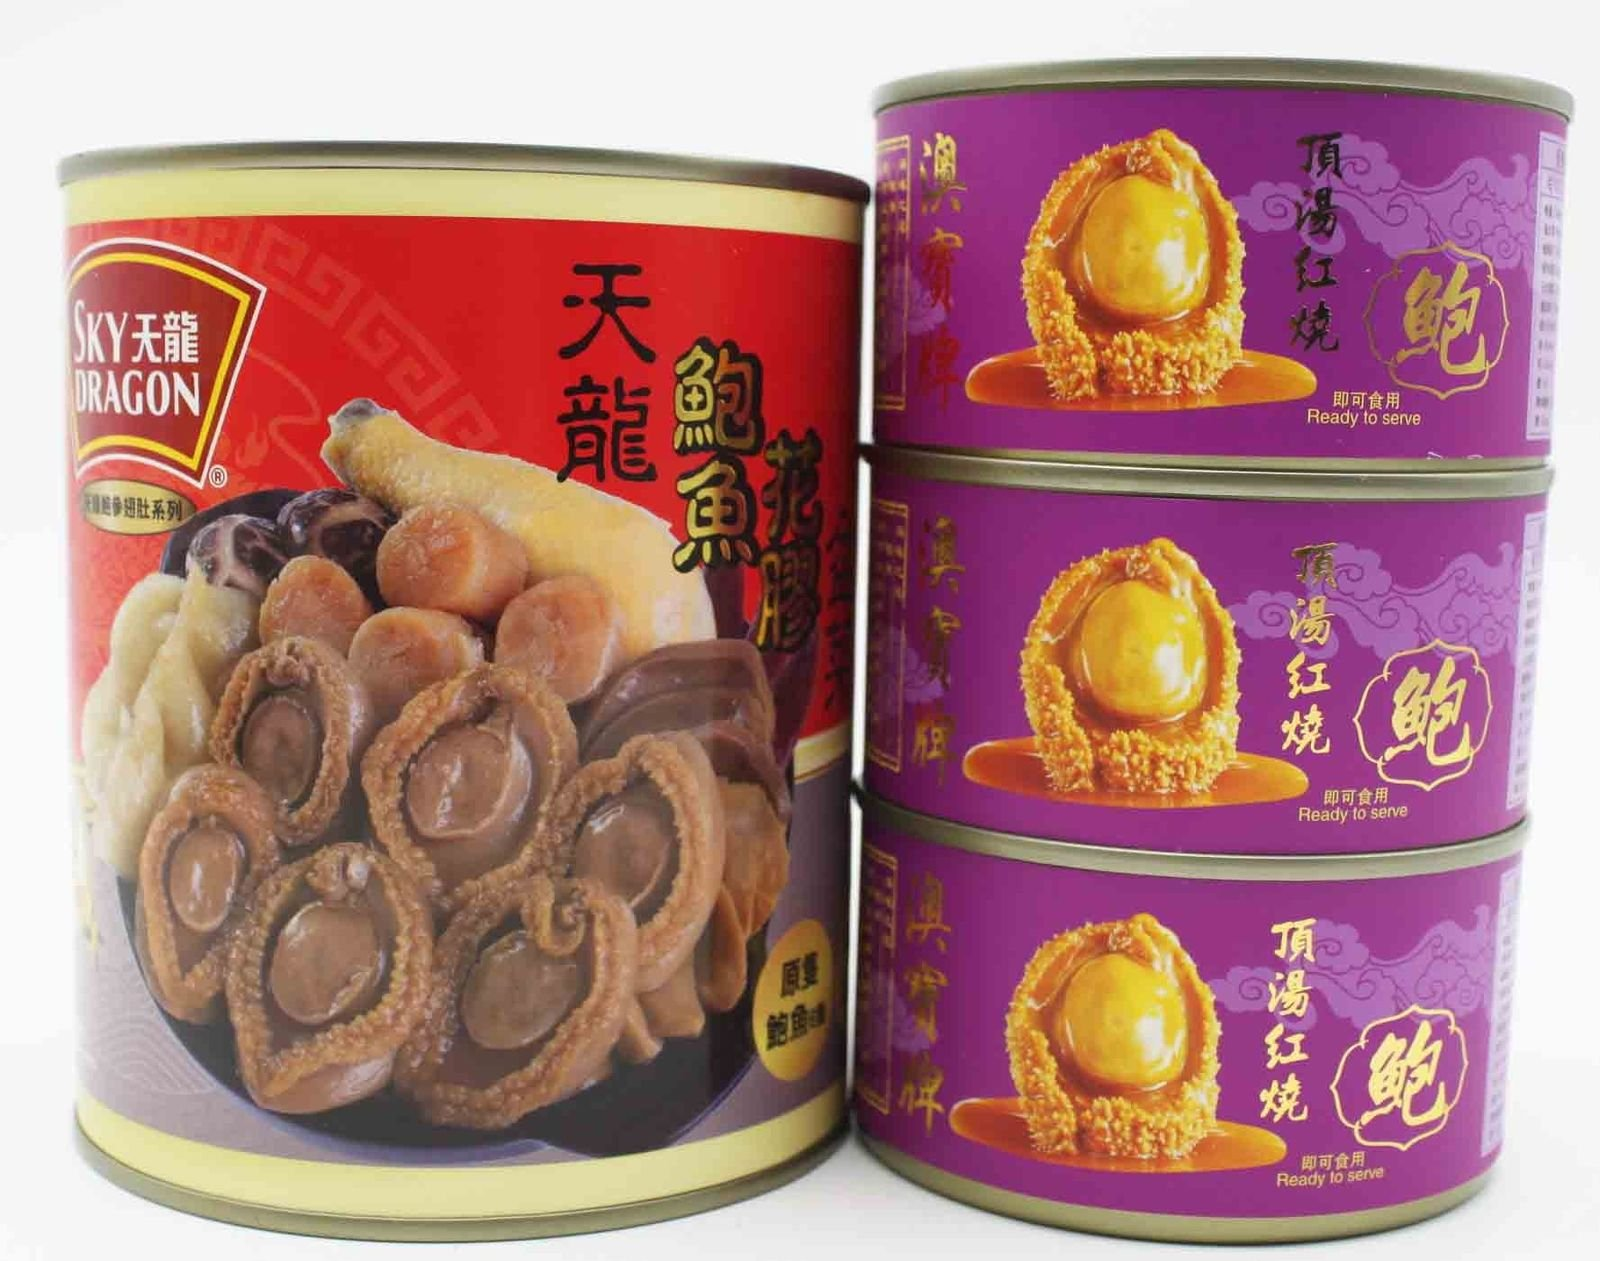 China Good Food Set-8 Canned Bowl Feast (1 can) x Canned Abalone 6 pieces (3 can) Free Airmail